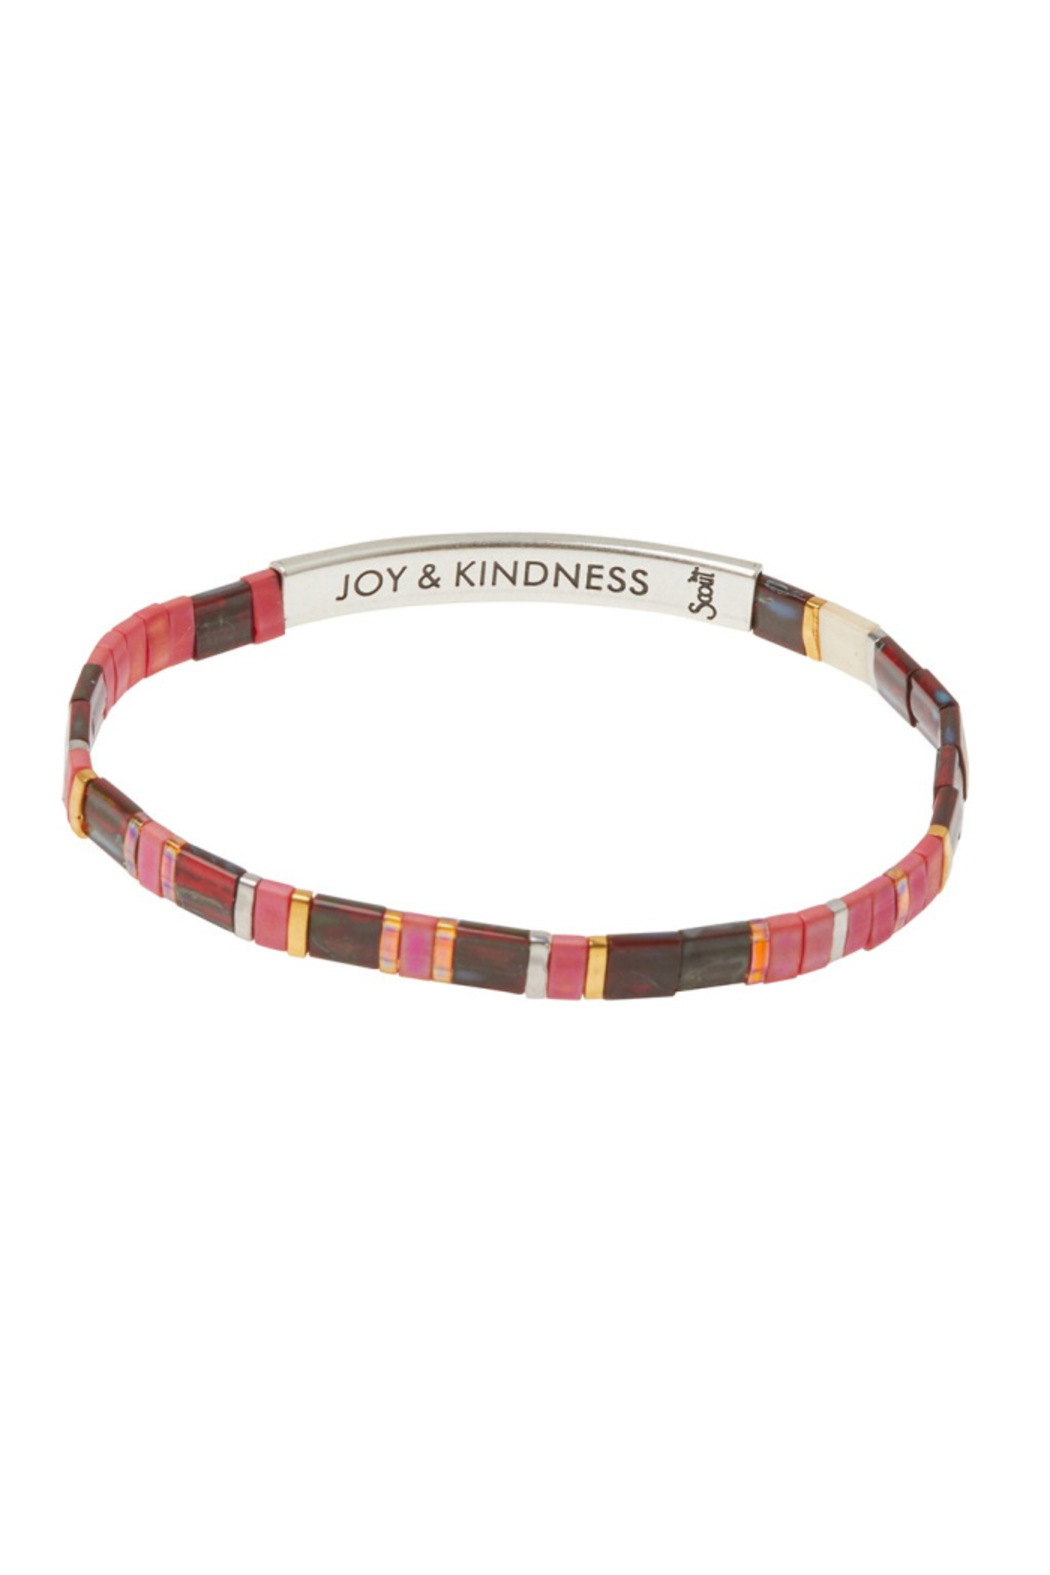 Scout CURATED WEARS GOOD KARMA MIUKI BRACELET - Front Cropped Image